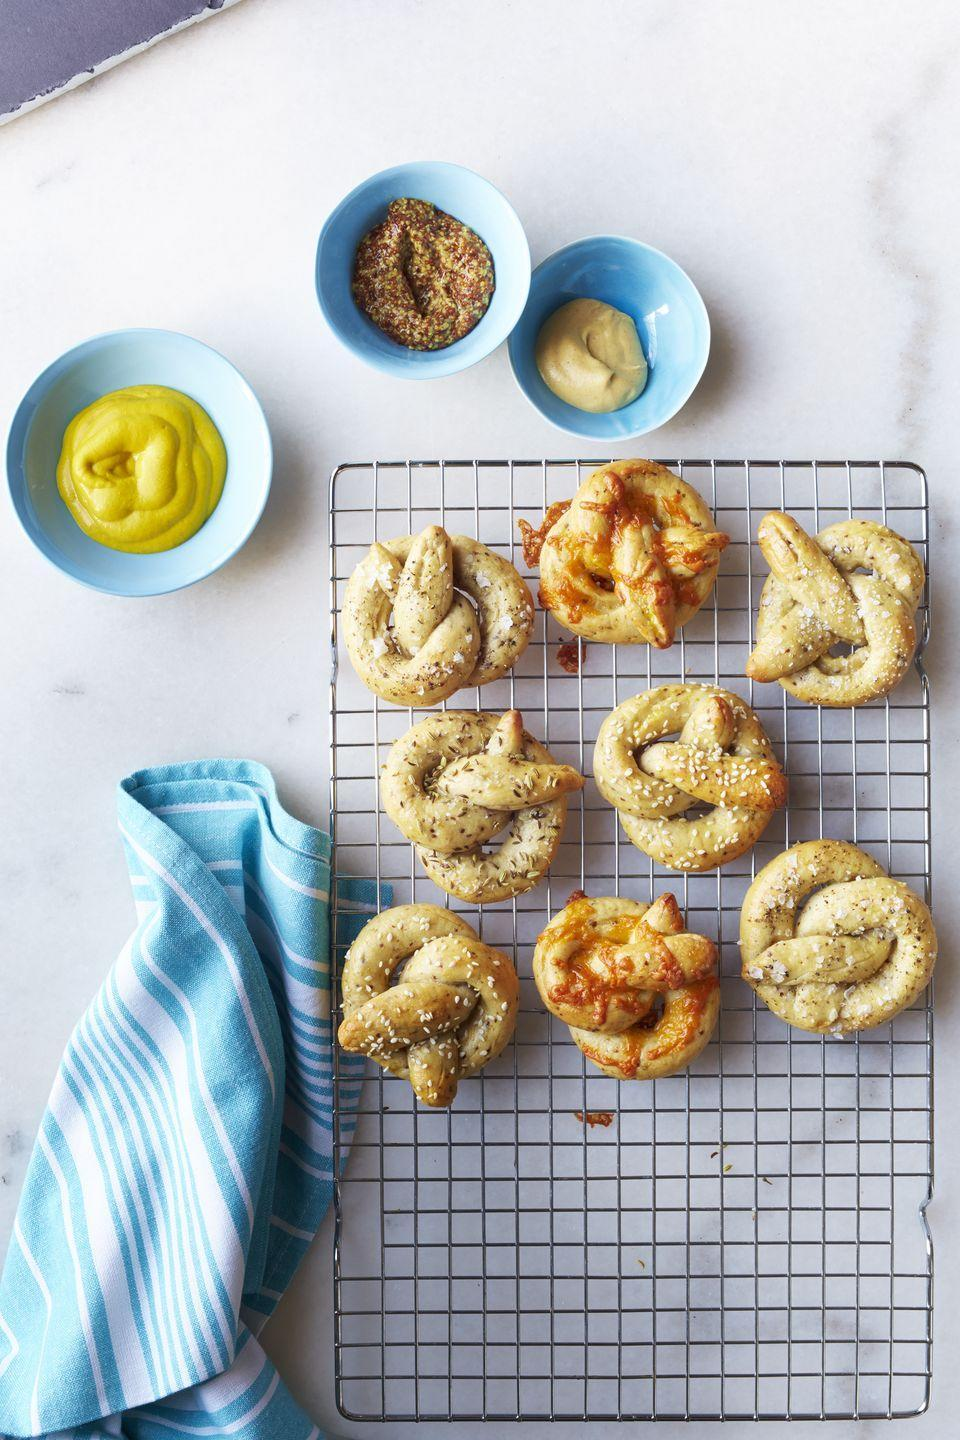 "<p>These warm pretzels will become a fan favorite when paired with several tasty dips. </p><p><strong><a href=""https://www.countryliving.com/food-drinks/recipes/a32522/grainy-mustard-soft-pretzels-recipe-wdy1014/"" rel=""nofollow noopener"" target=""_blank"" data-ylk=""slk:Get the recipe"" class=""link rapid-noclick-resp"">Get the recipe</a>.</strong></p>"